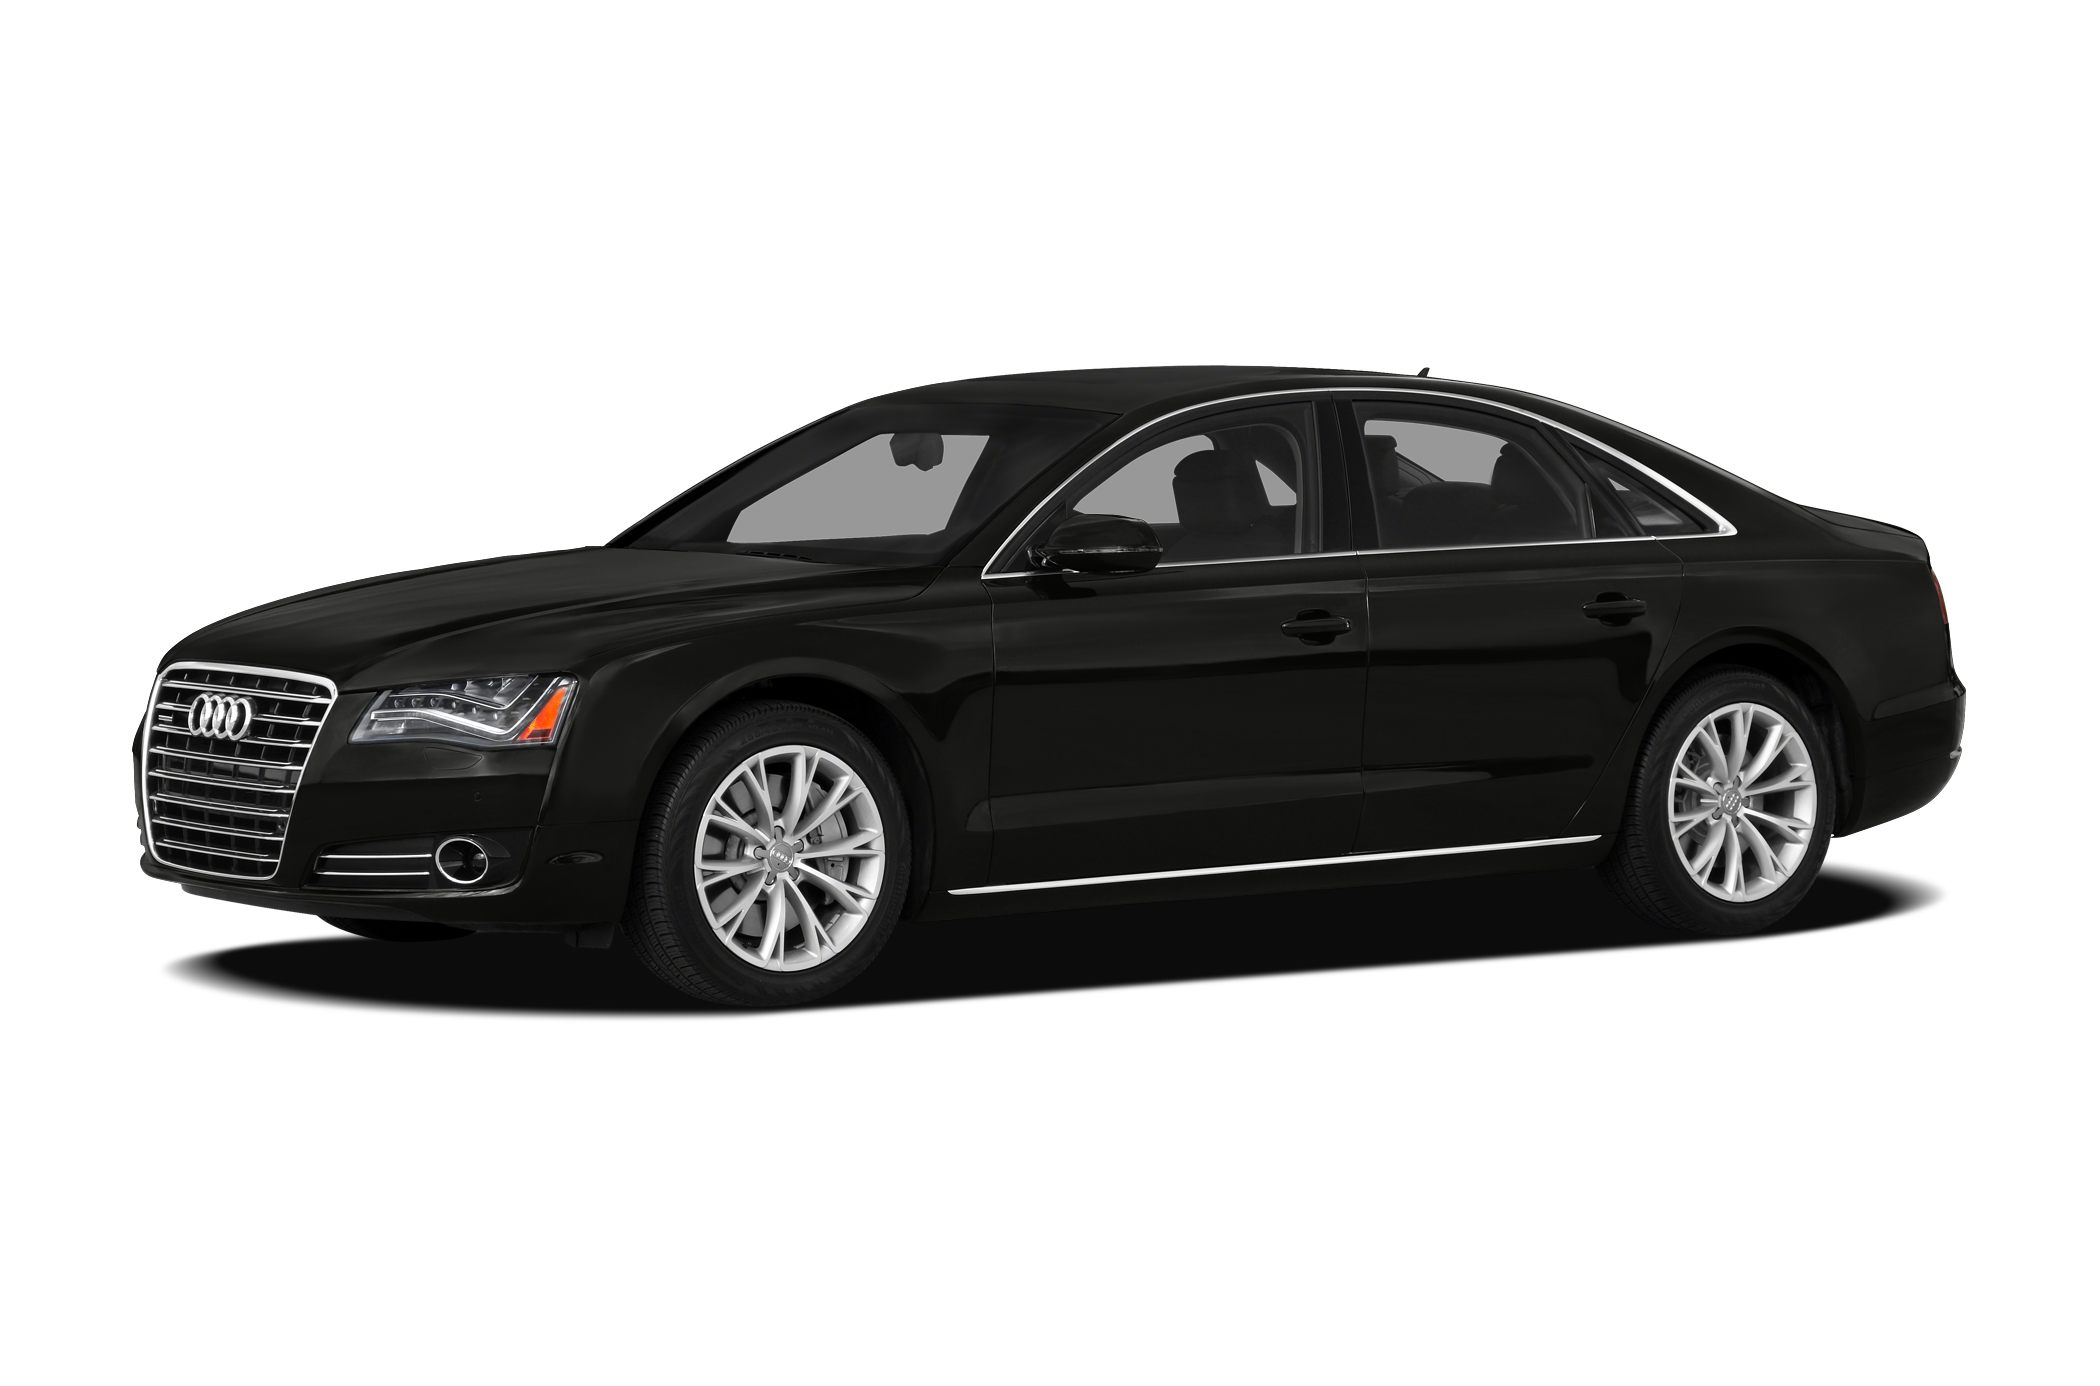 2013 Audi A8 3.0T Sedan for sale in Dallas for $47,900 with 14,420 miles